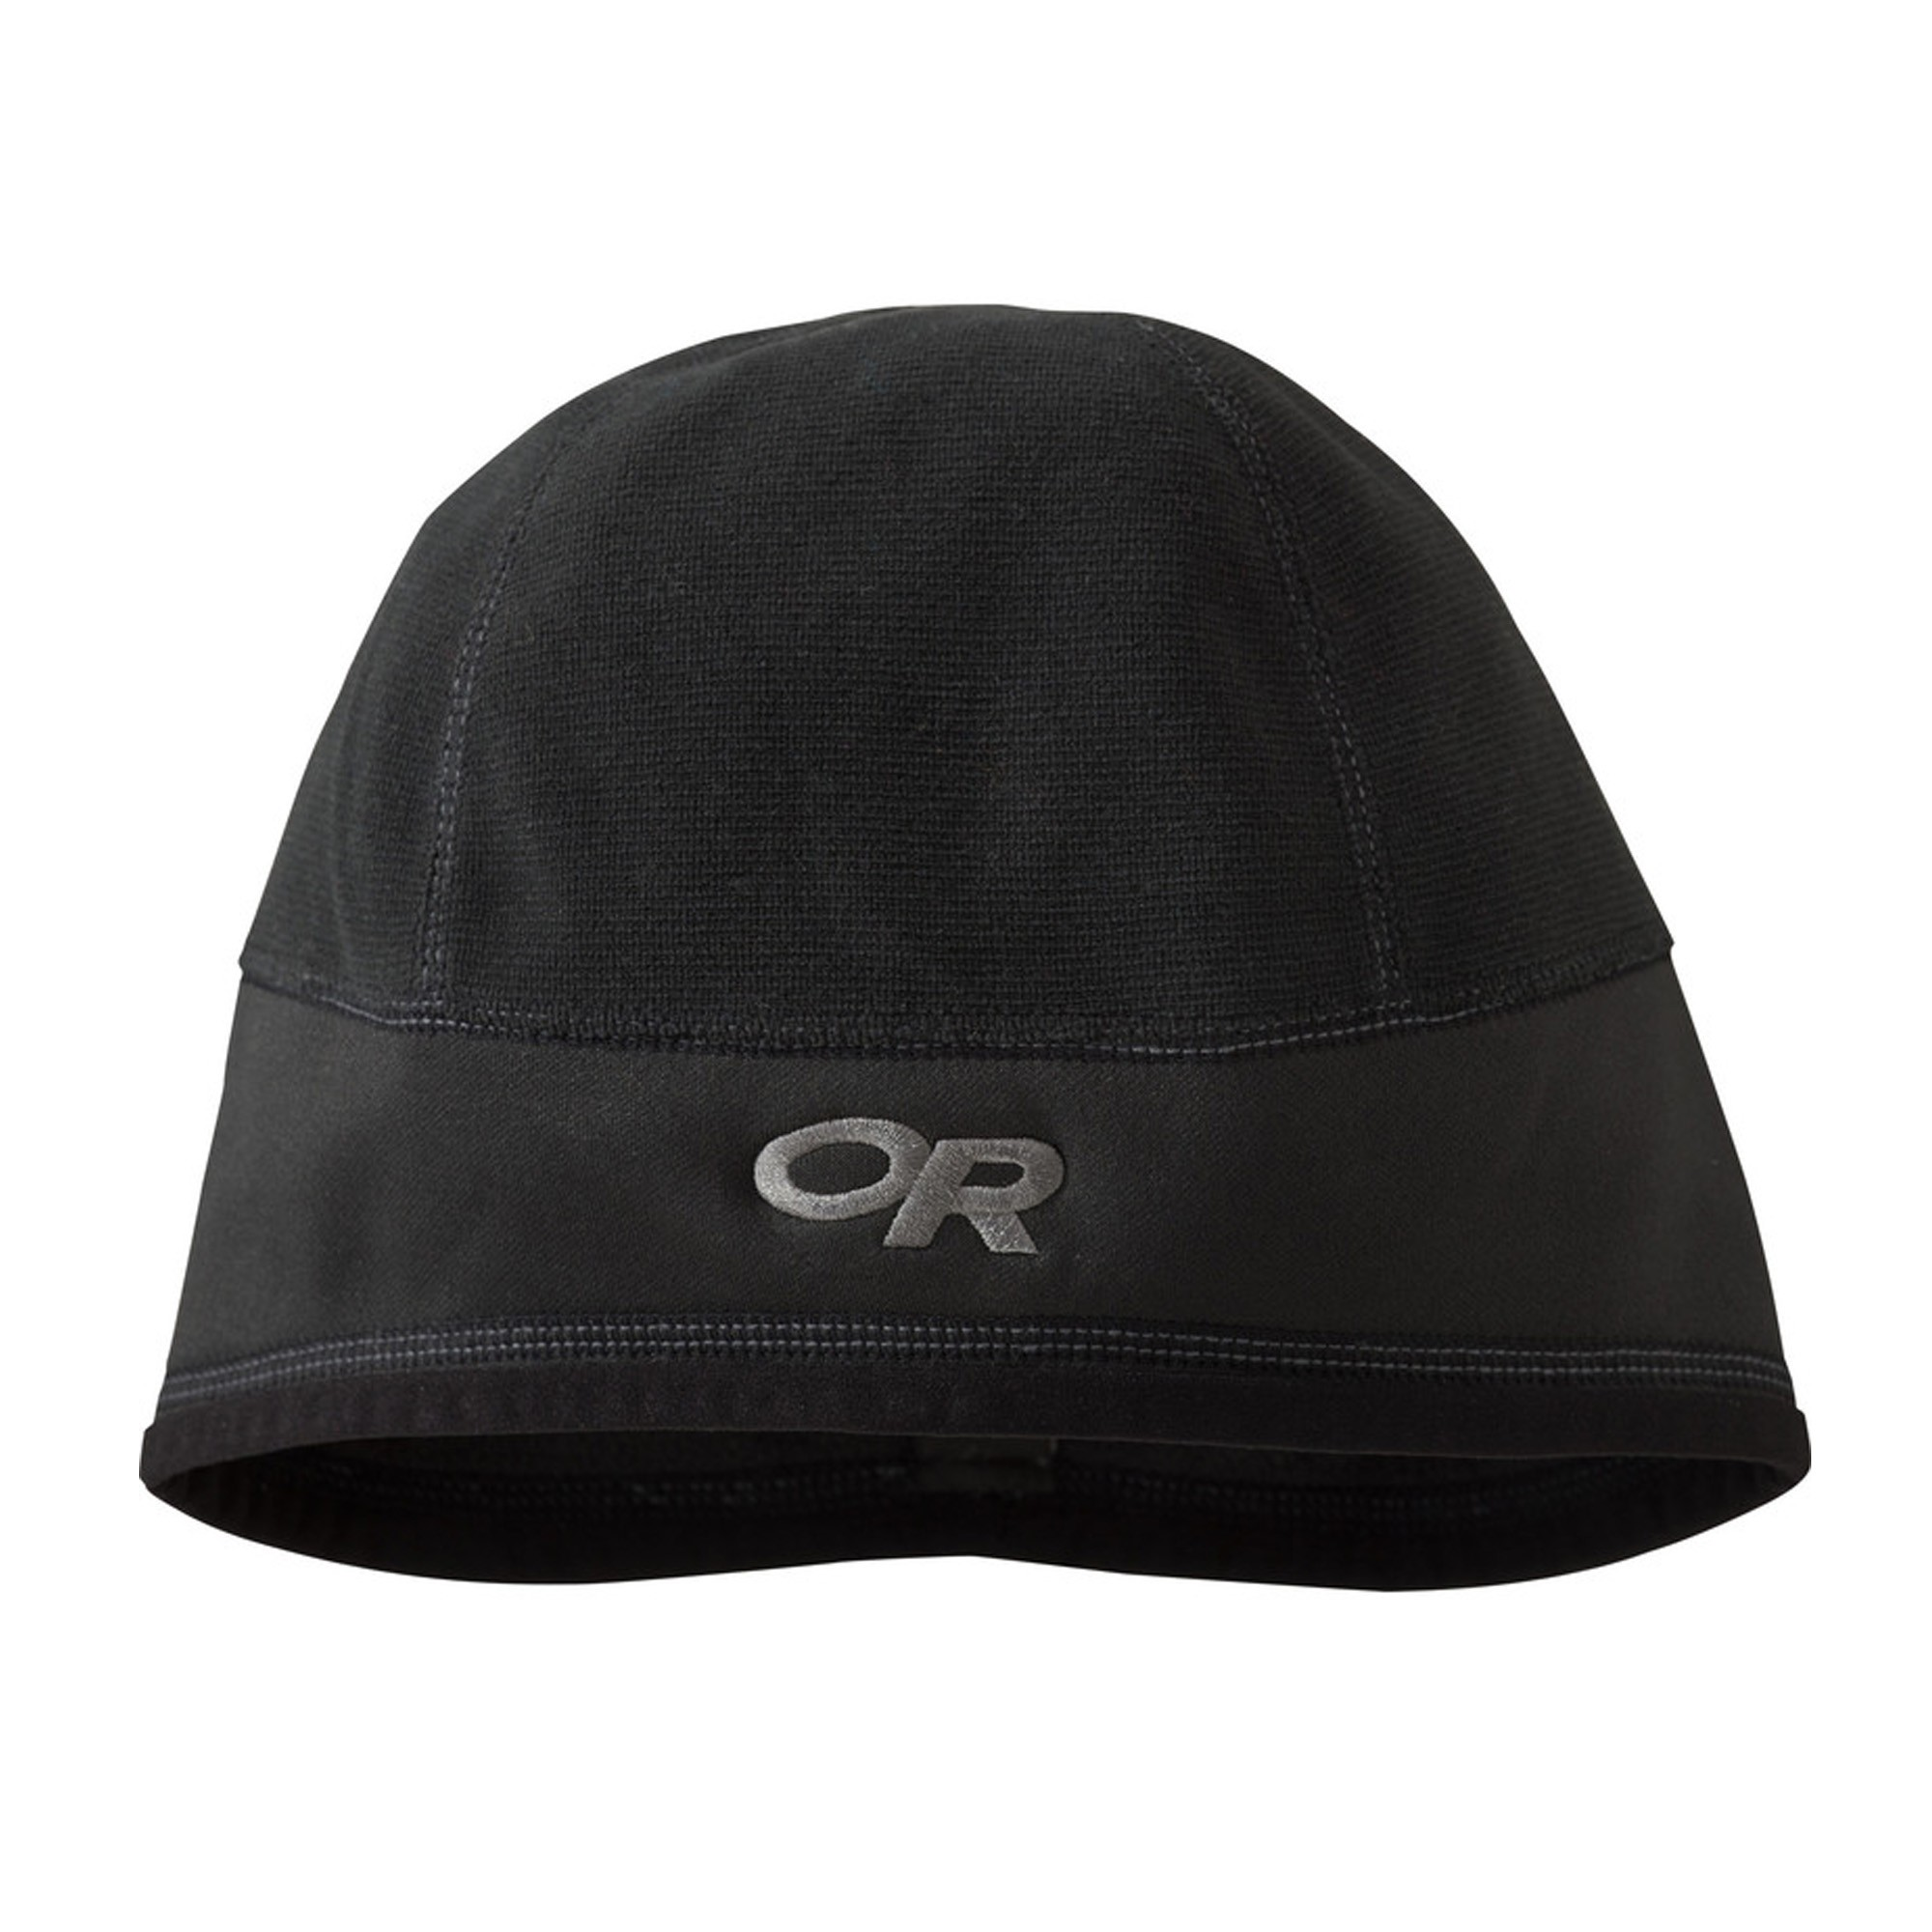 6731083ff29 Outdoor Research OR Crest Hat Black L XL 727602339146